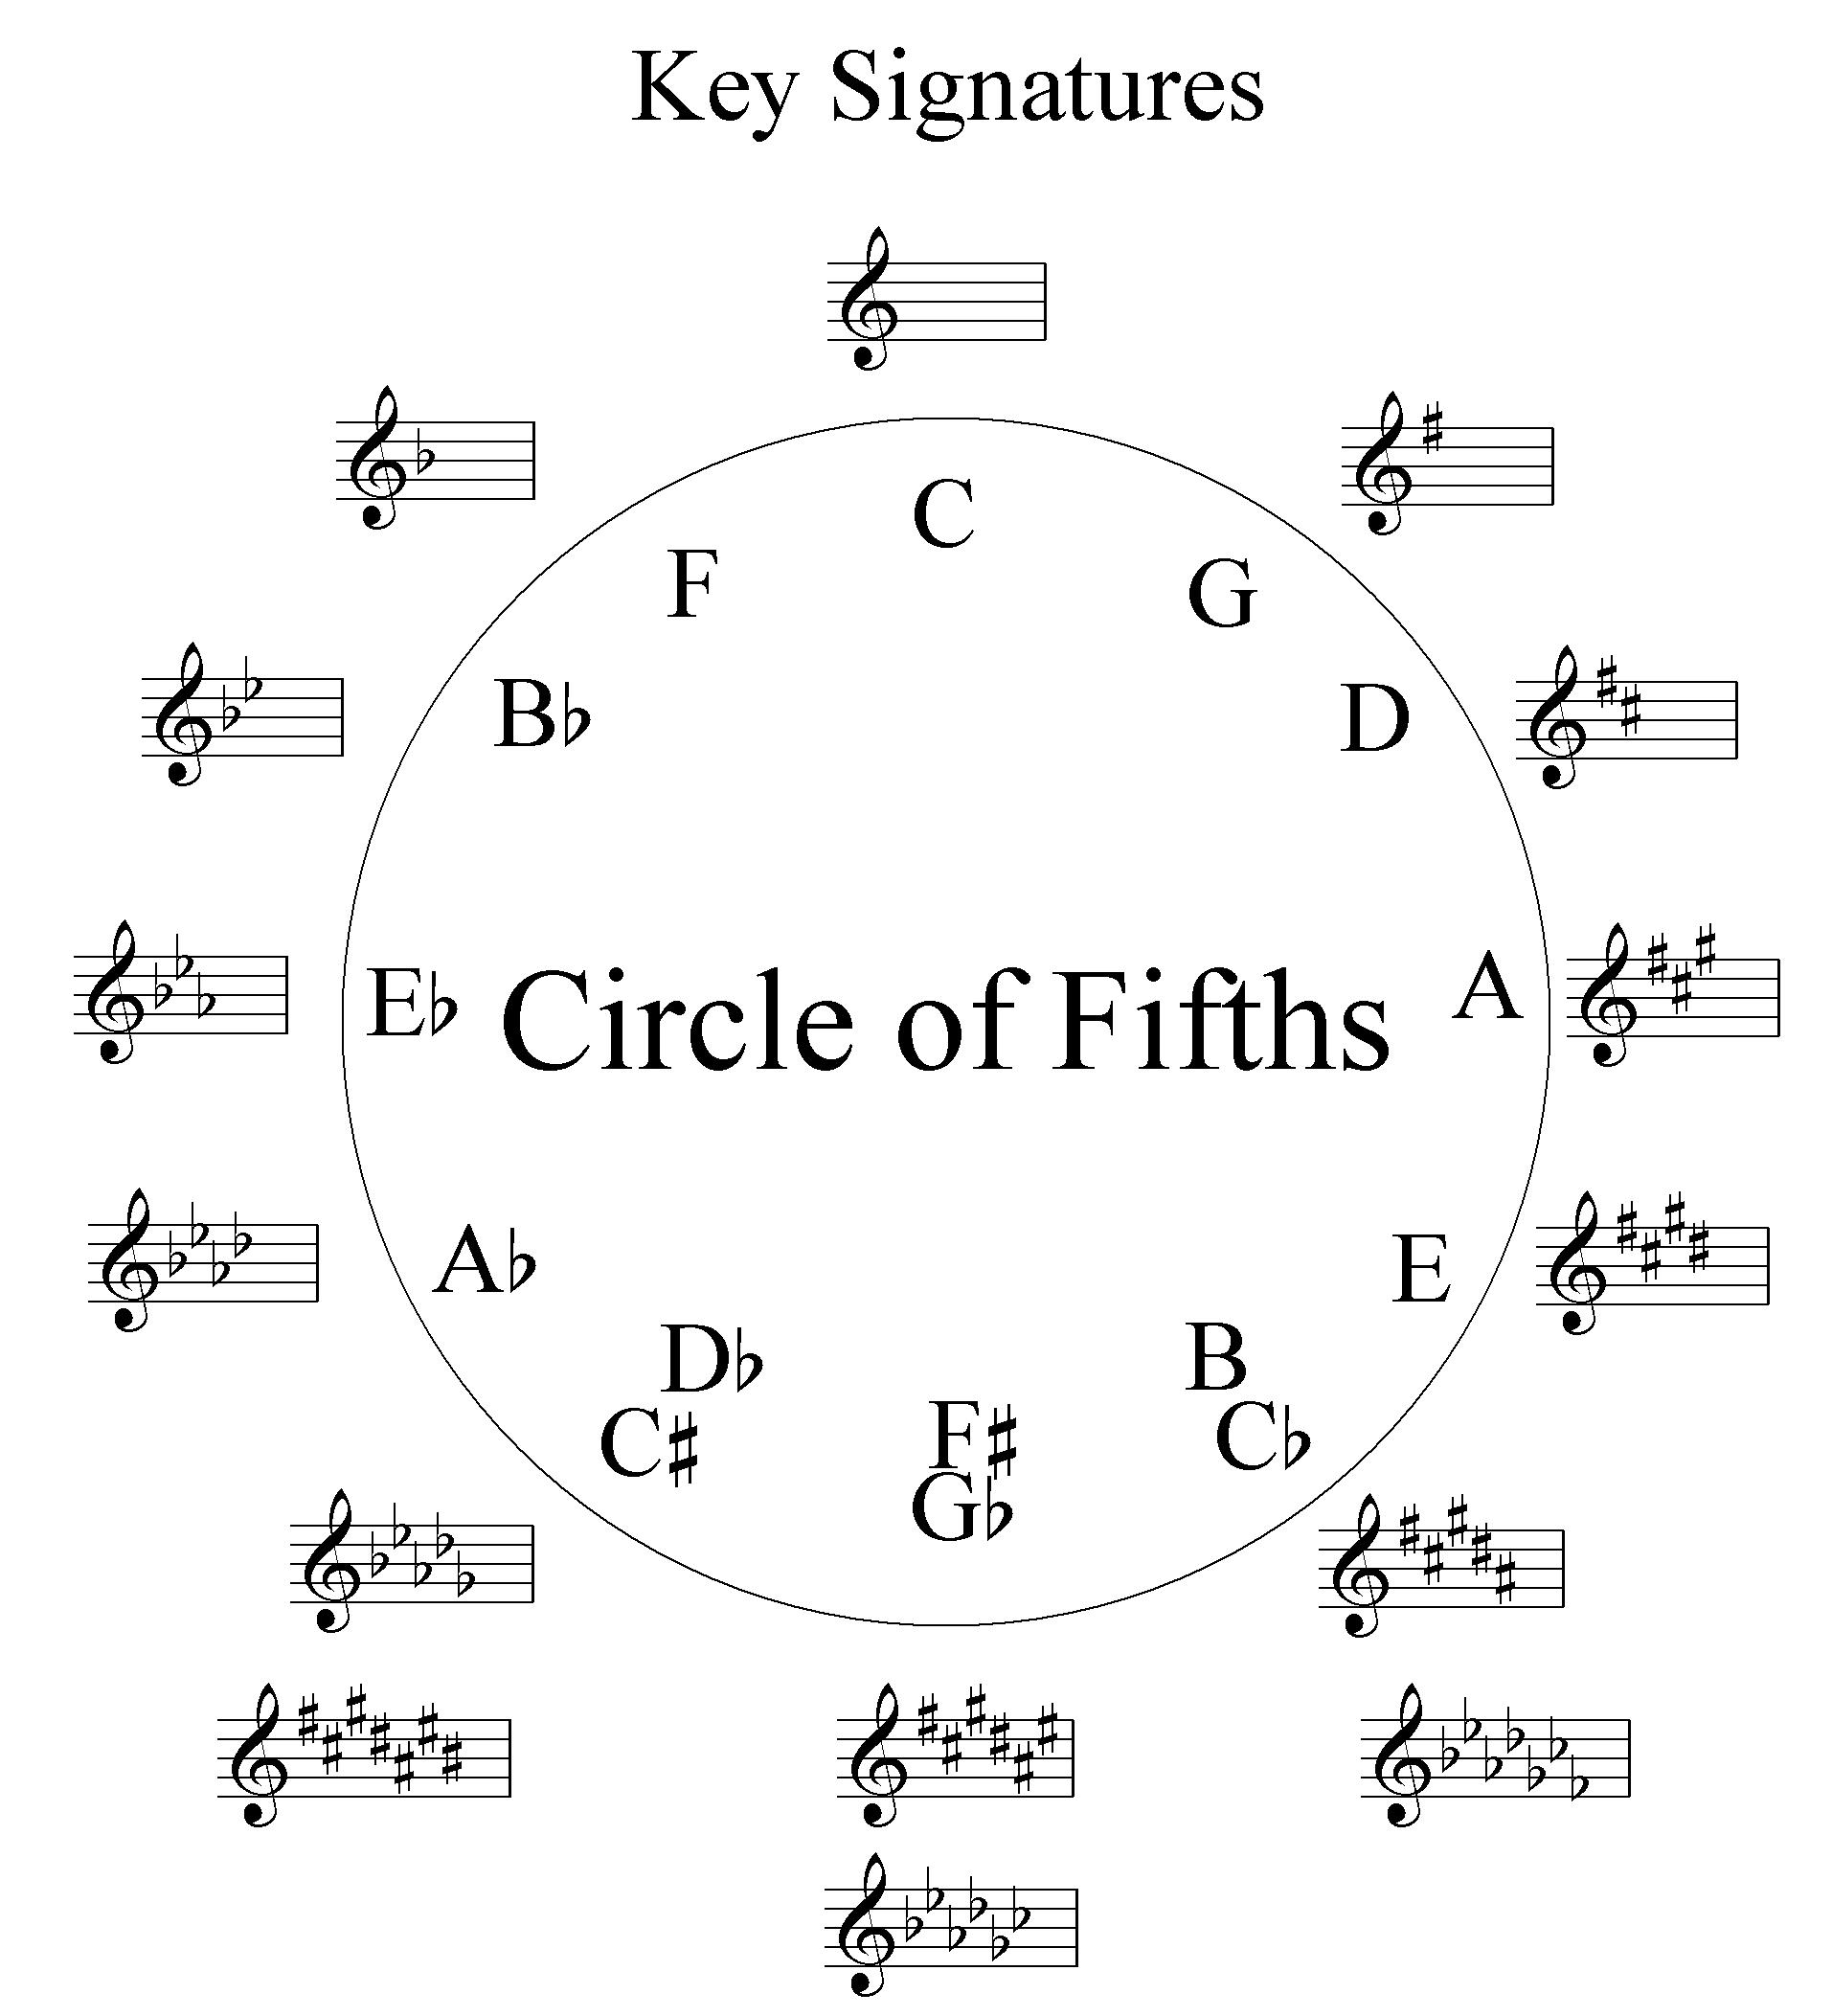 how the circle of fifths is described in my understanding